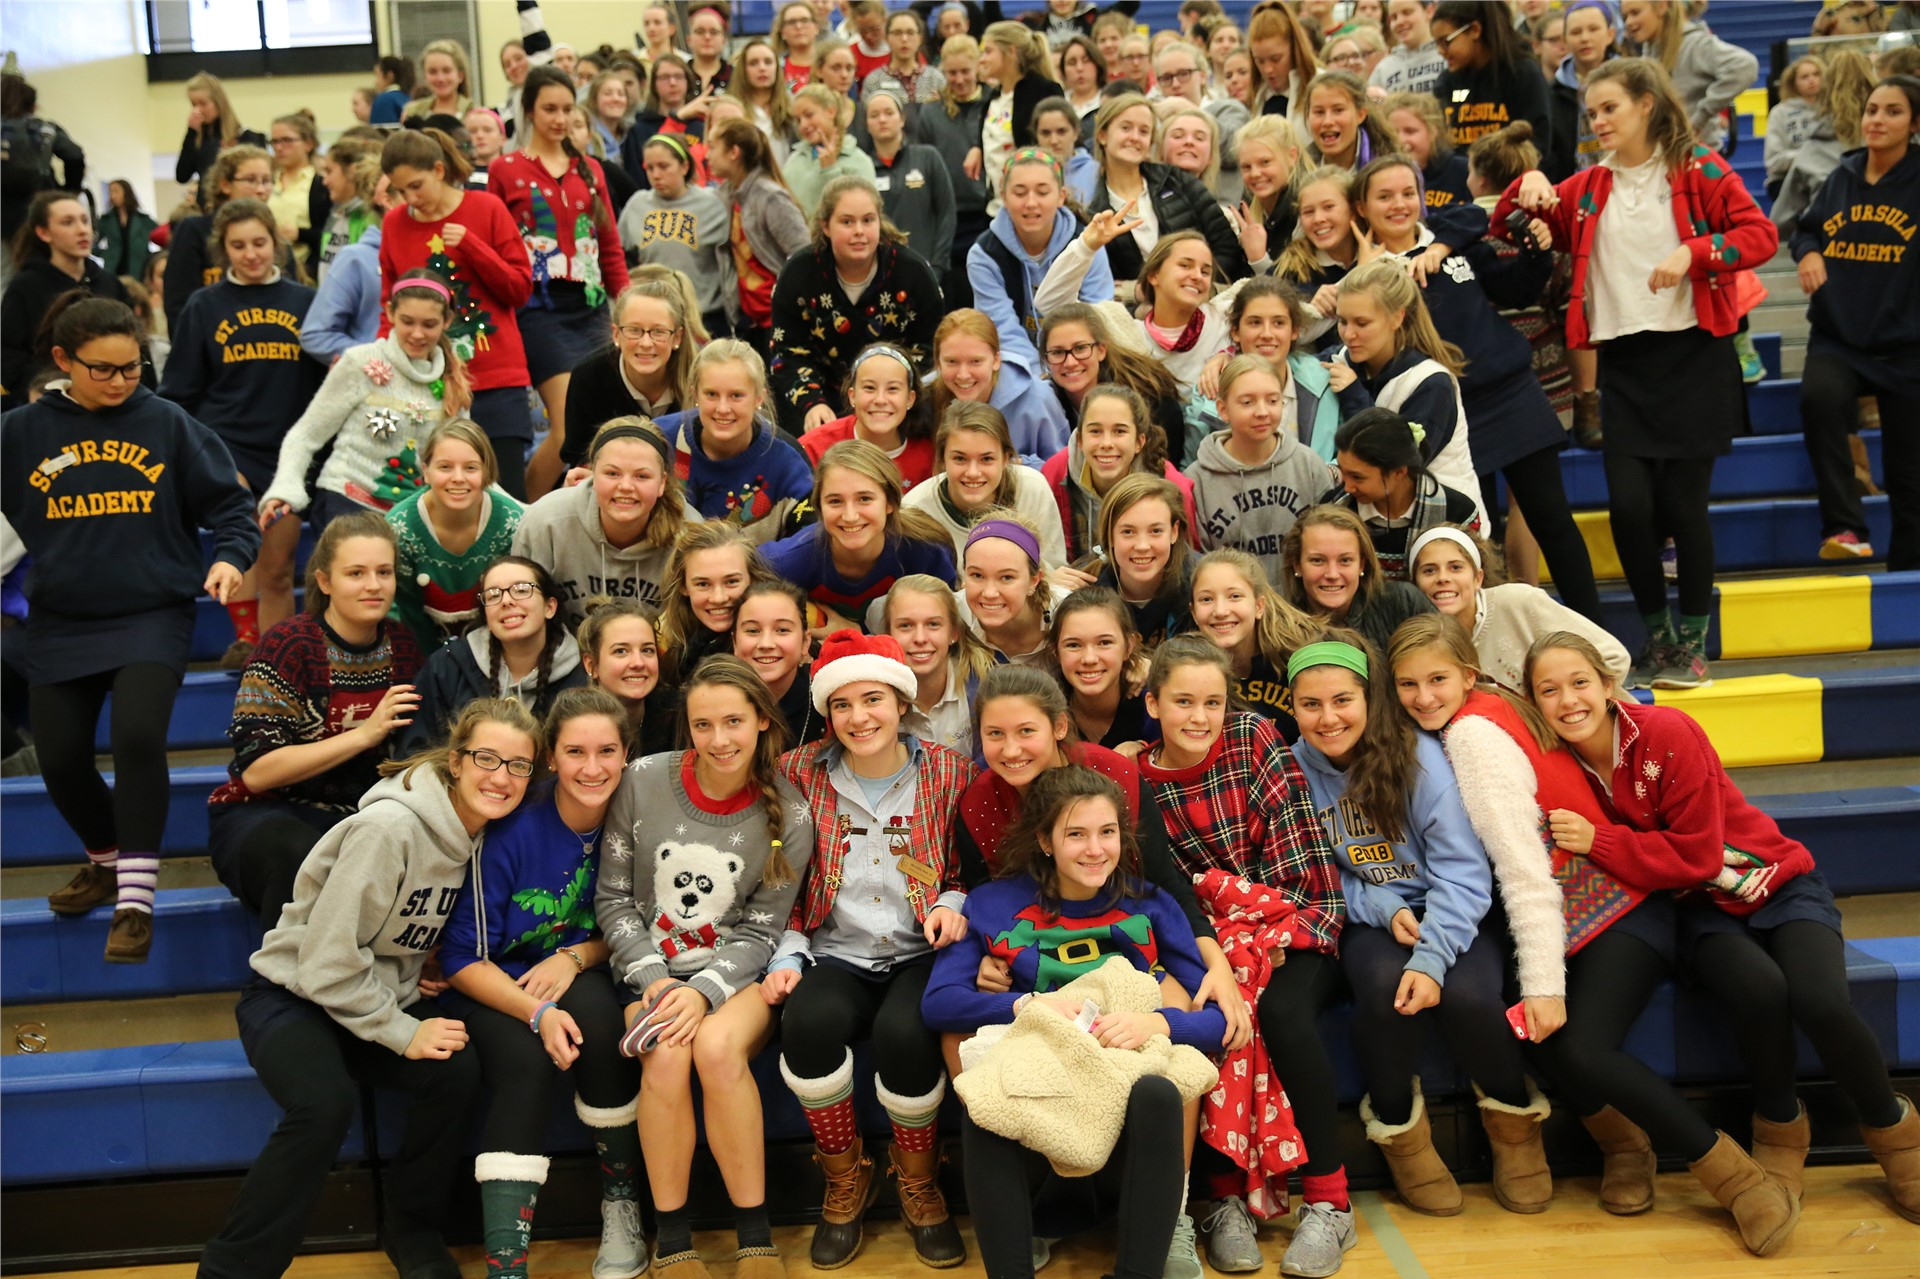 Fun sweaters for everyone during the Winter Pep Rally!